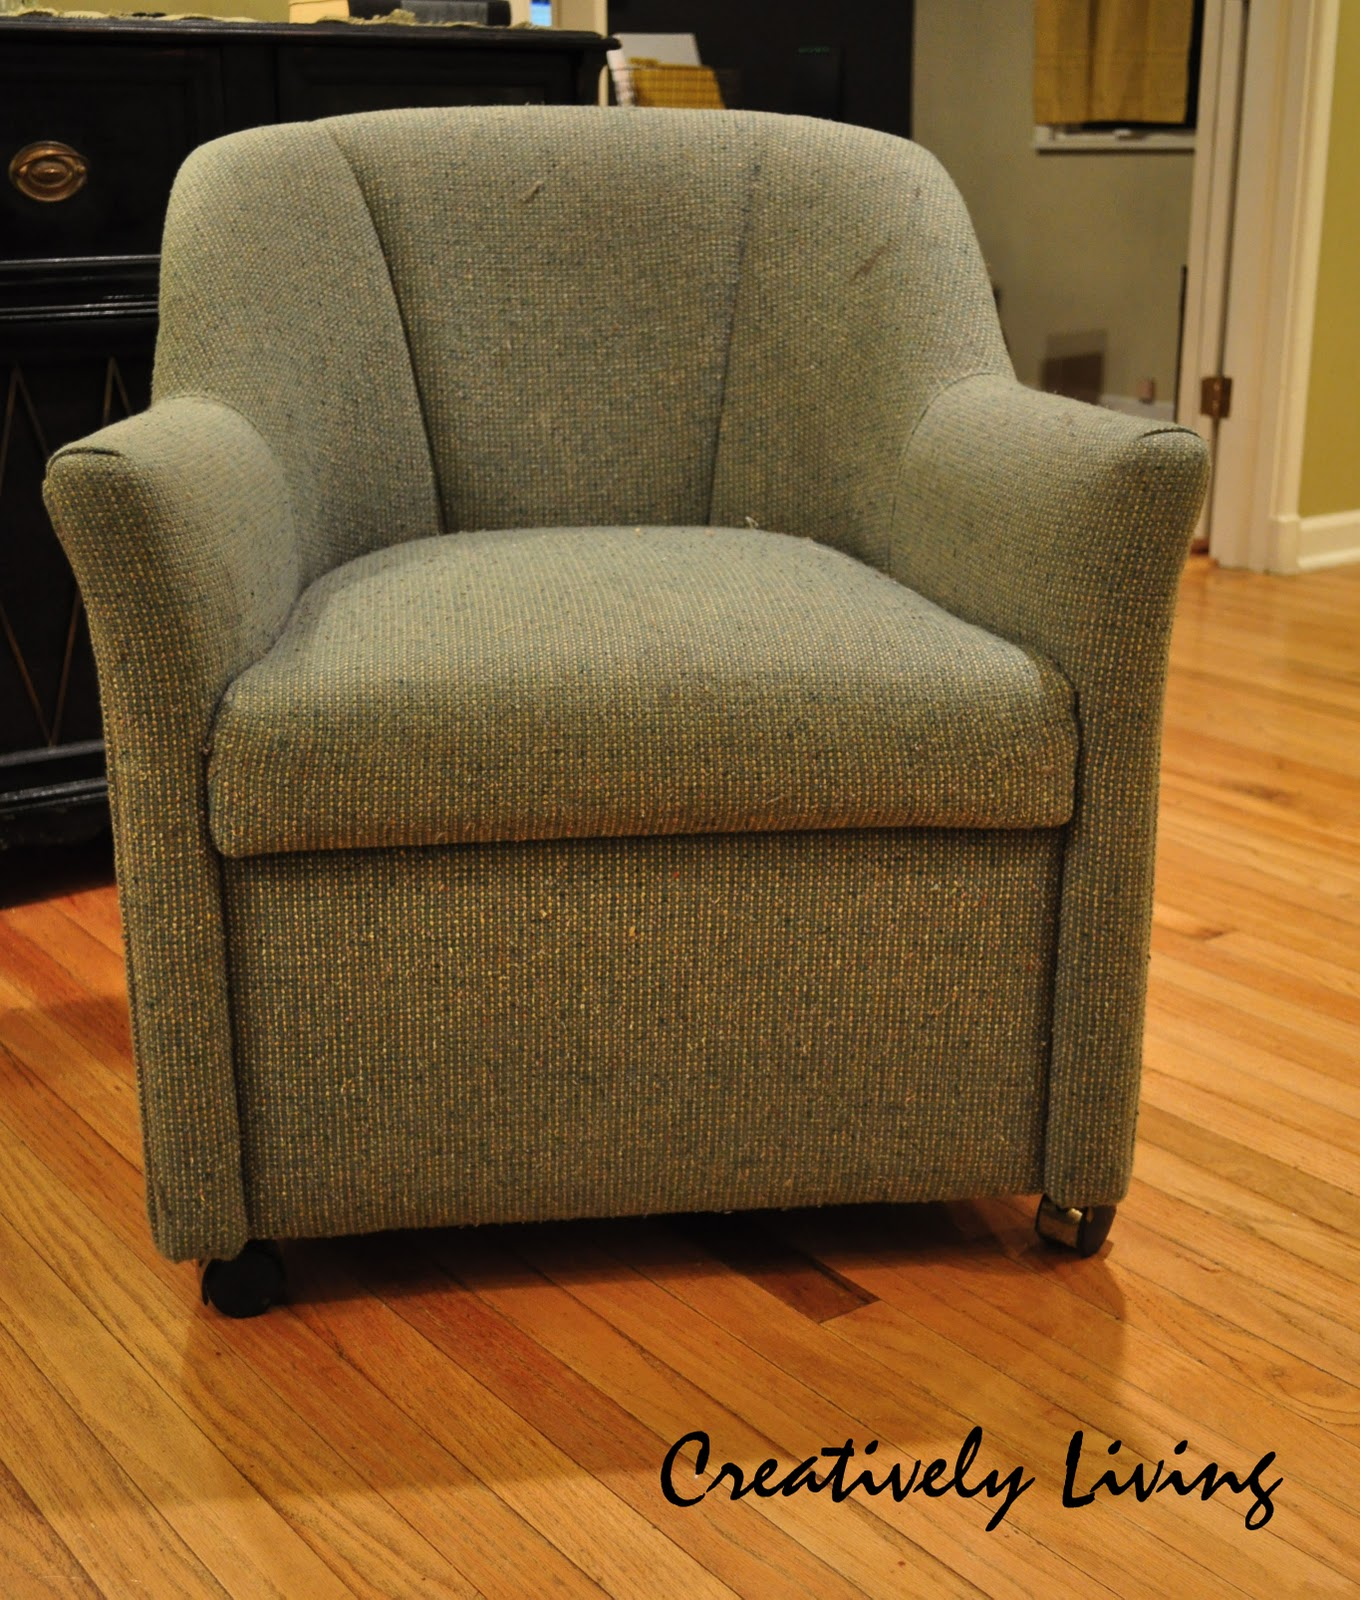 fabric paint for furnitureThe LowDown on Painting Upholstered Chairs  Creatively Living Blog